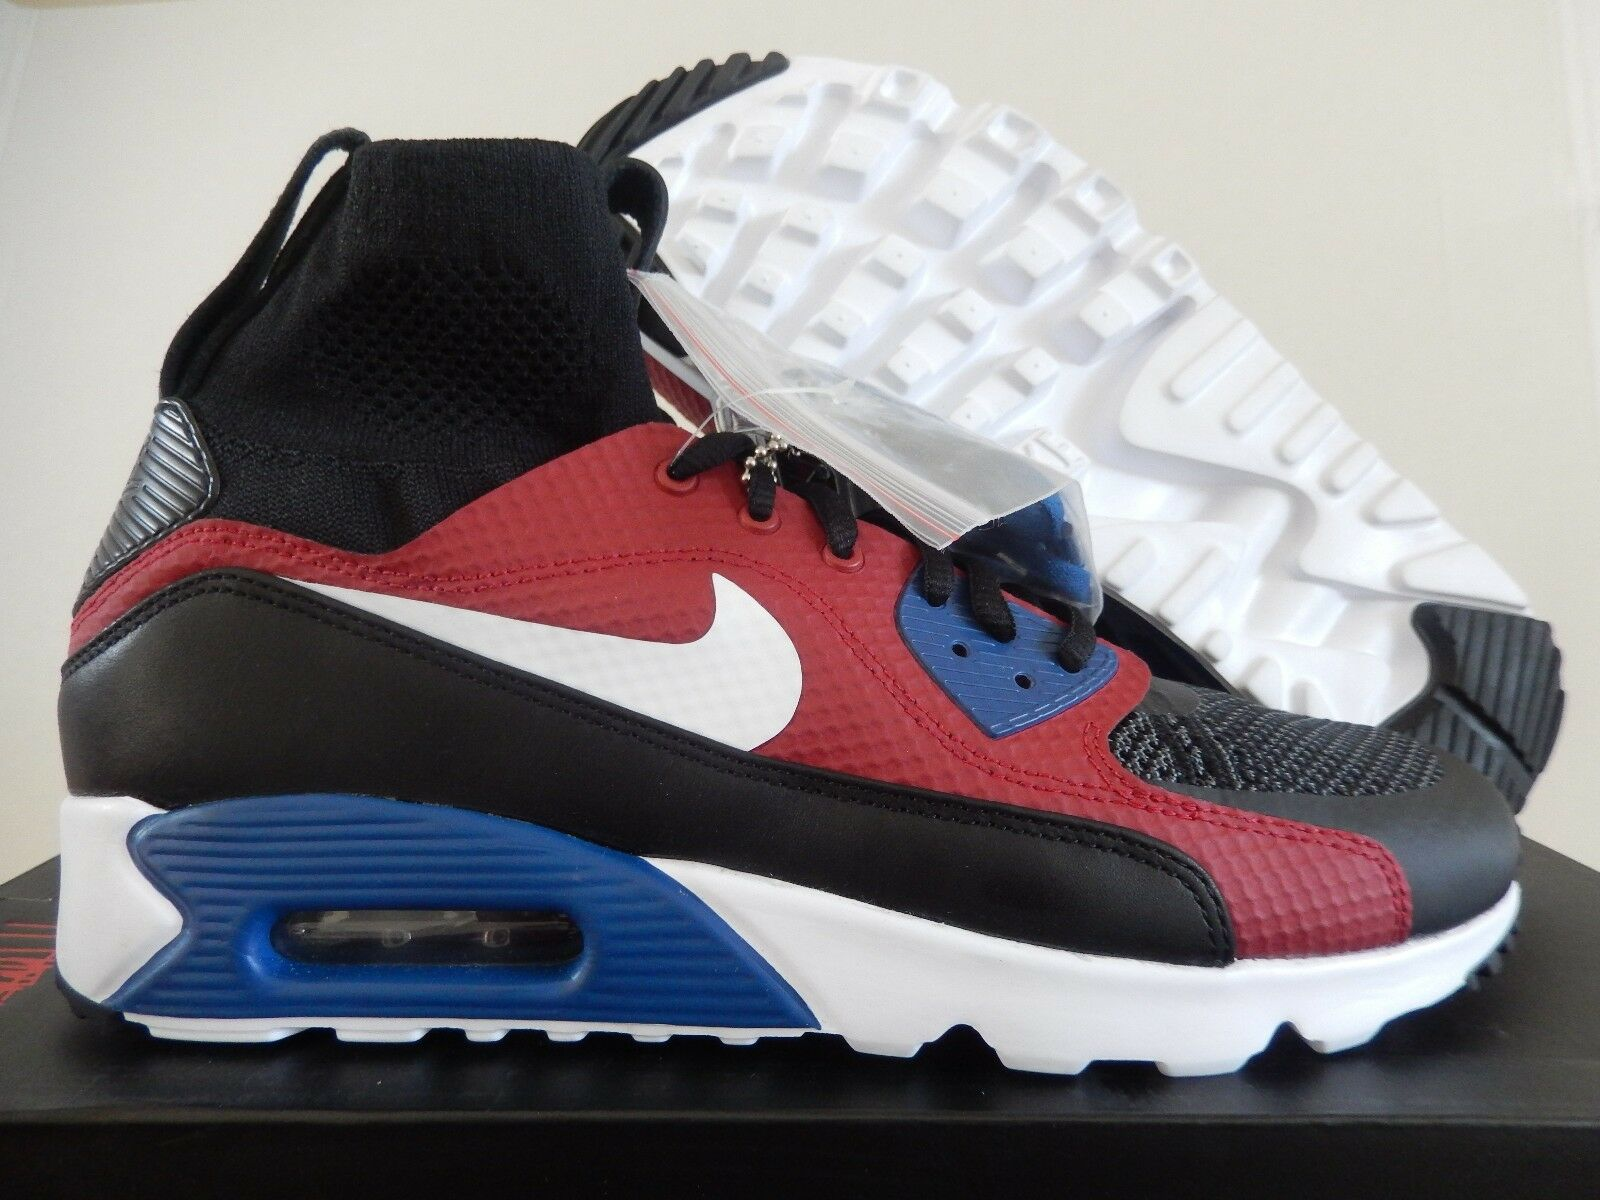 Mens Nike Air Max 90 Ultra Superfly RARE - 850613 001 - Black White Red Traine